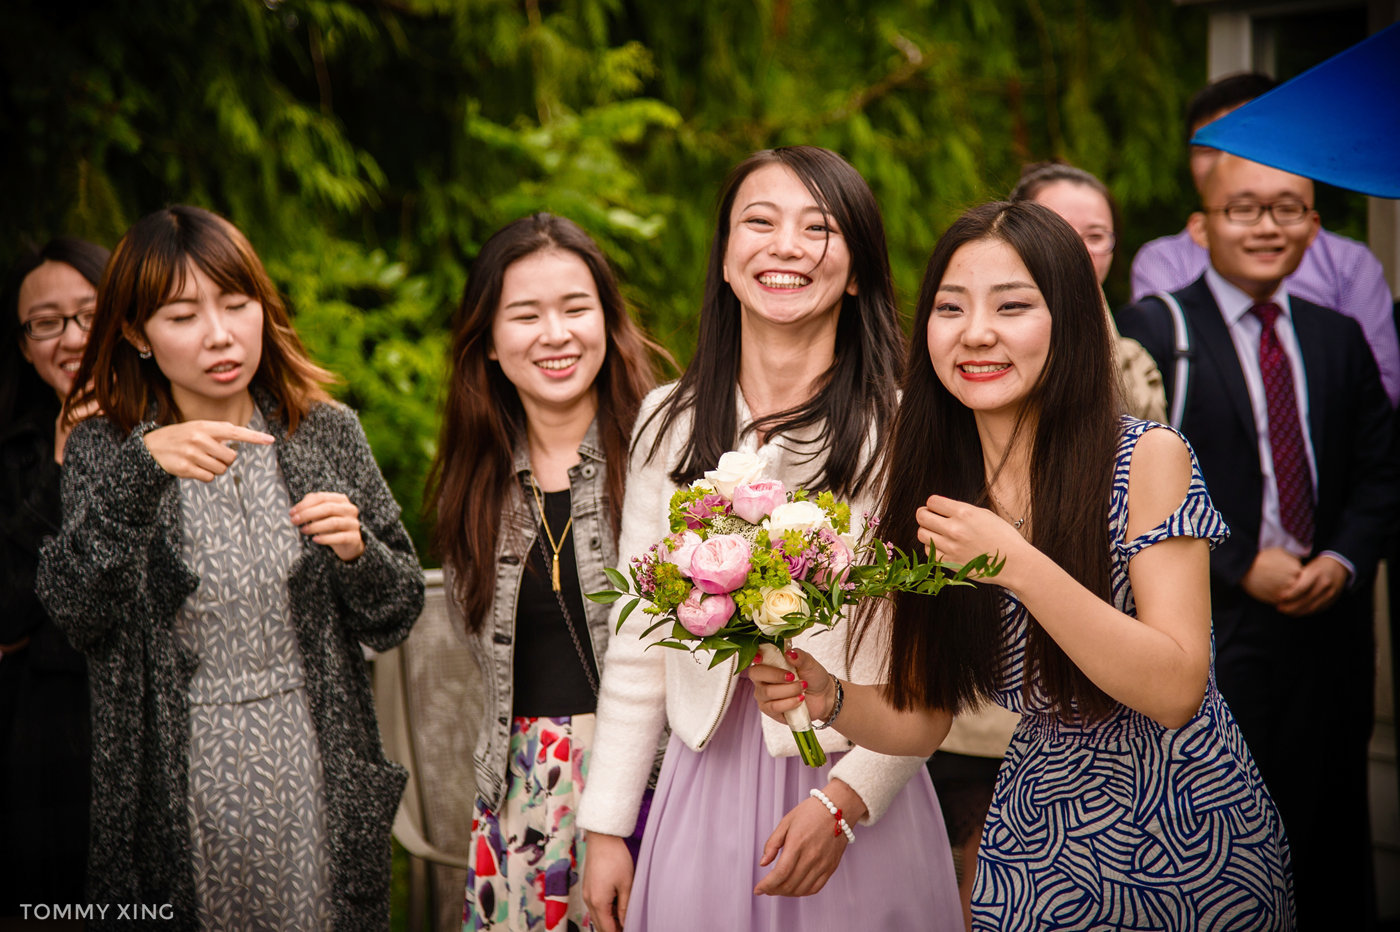 Seattle Wedding and pre wedding Los Angeles Tommy Xing Photography 西雅图洛杉矶旧金山婚礼婚纱照摄影师 135.jpg